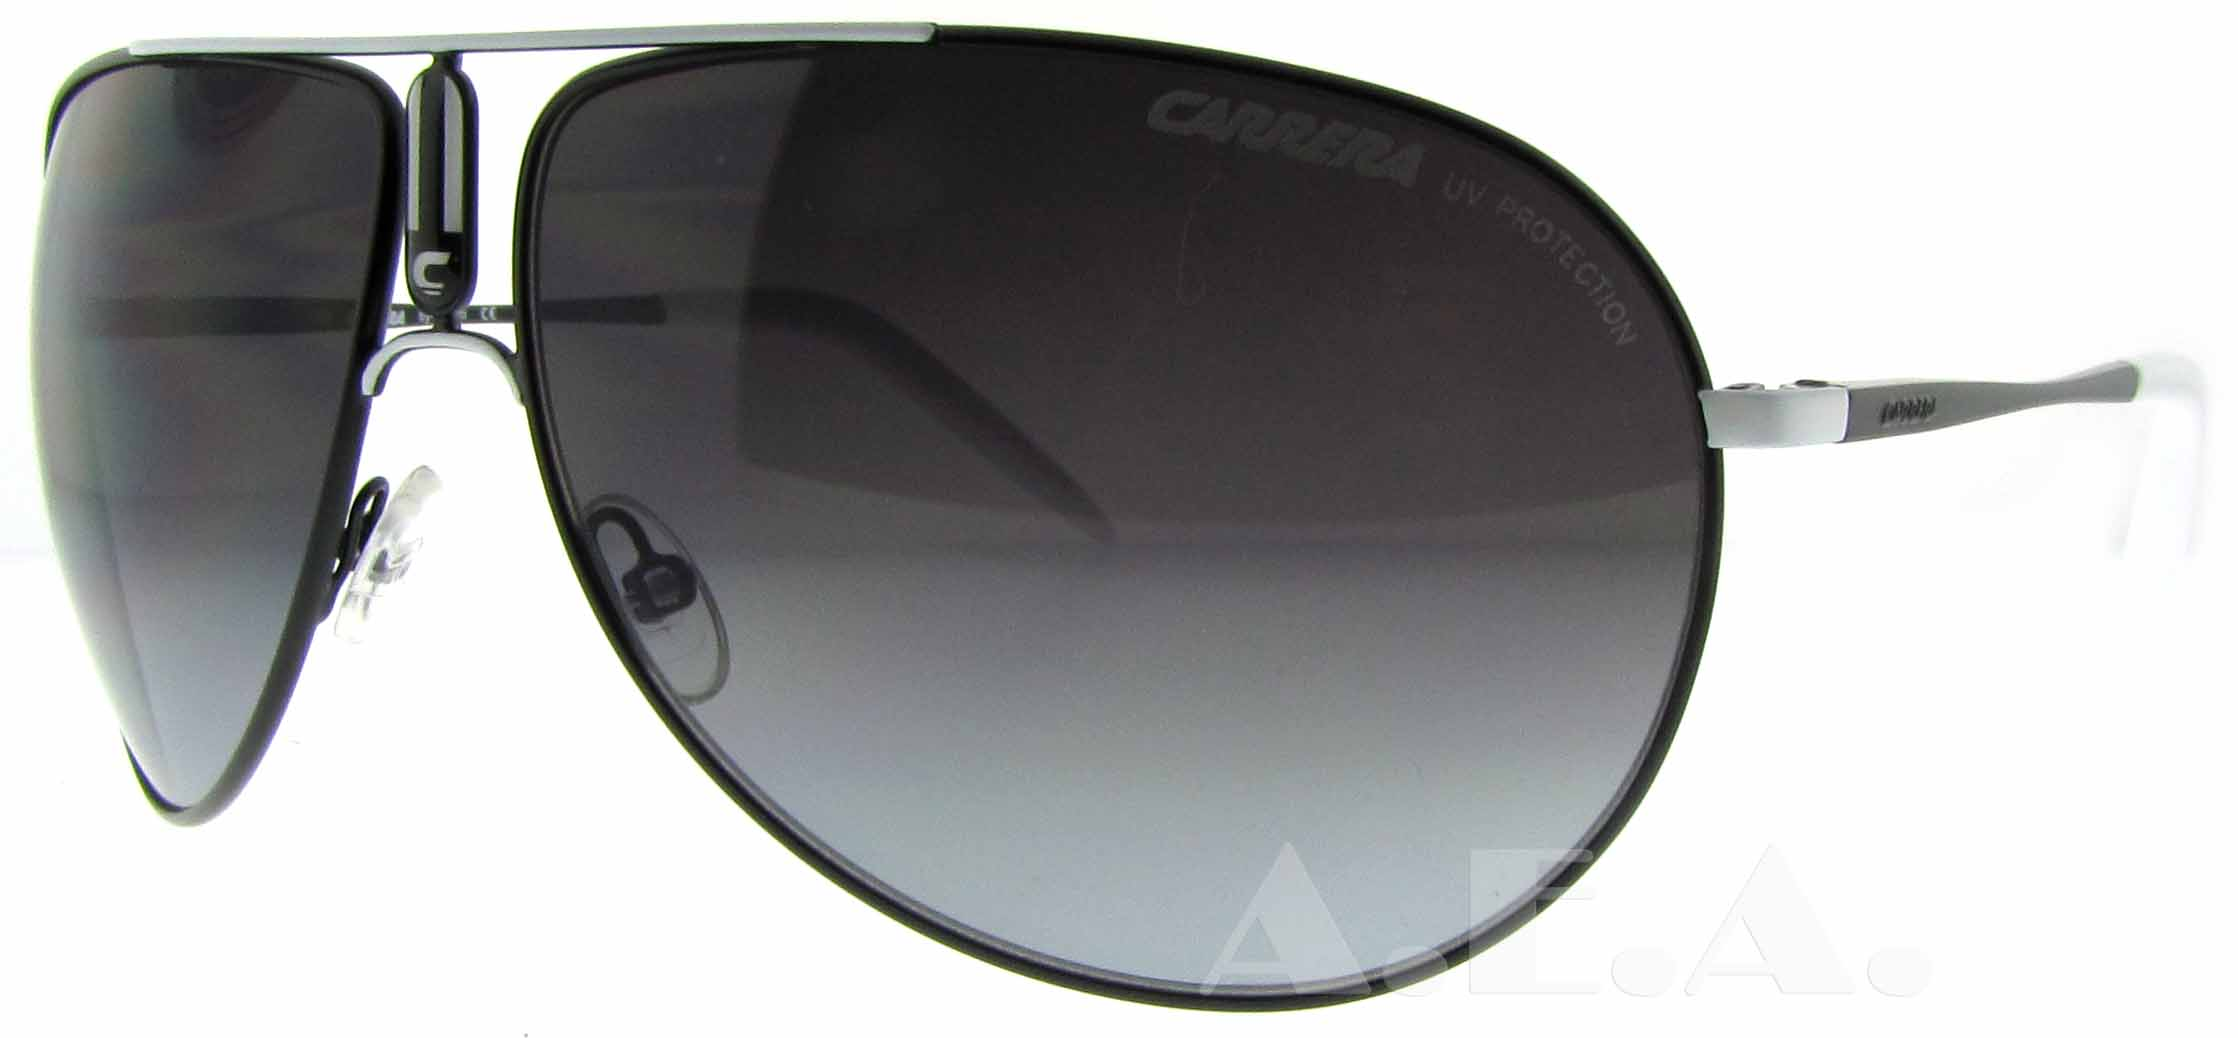 aviator designer sunglasses  of designer